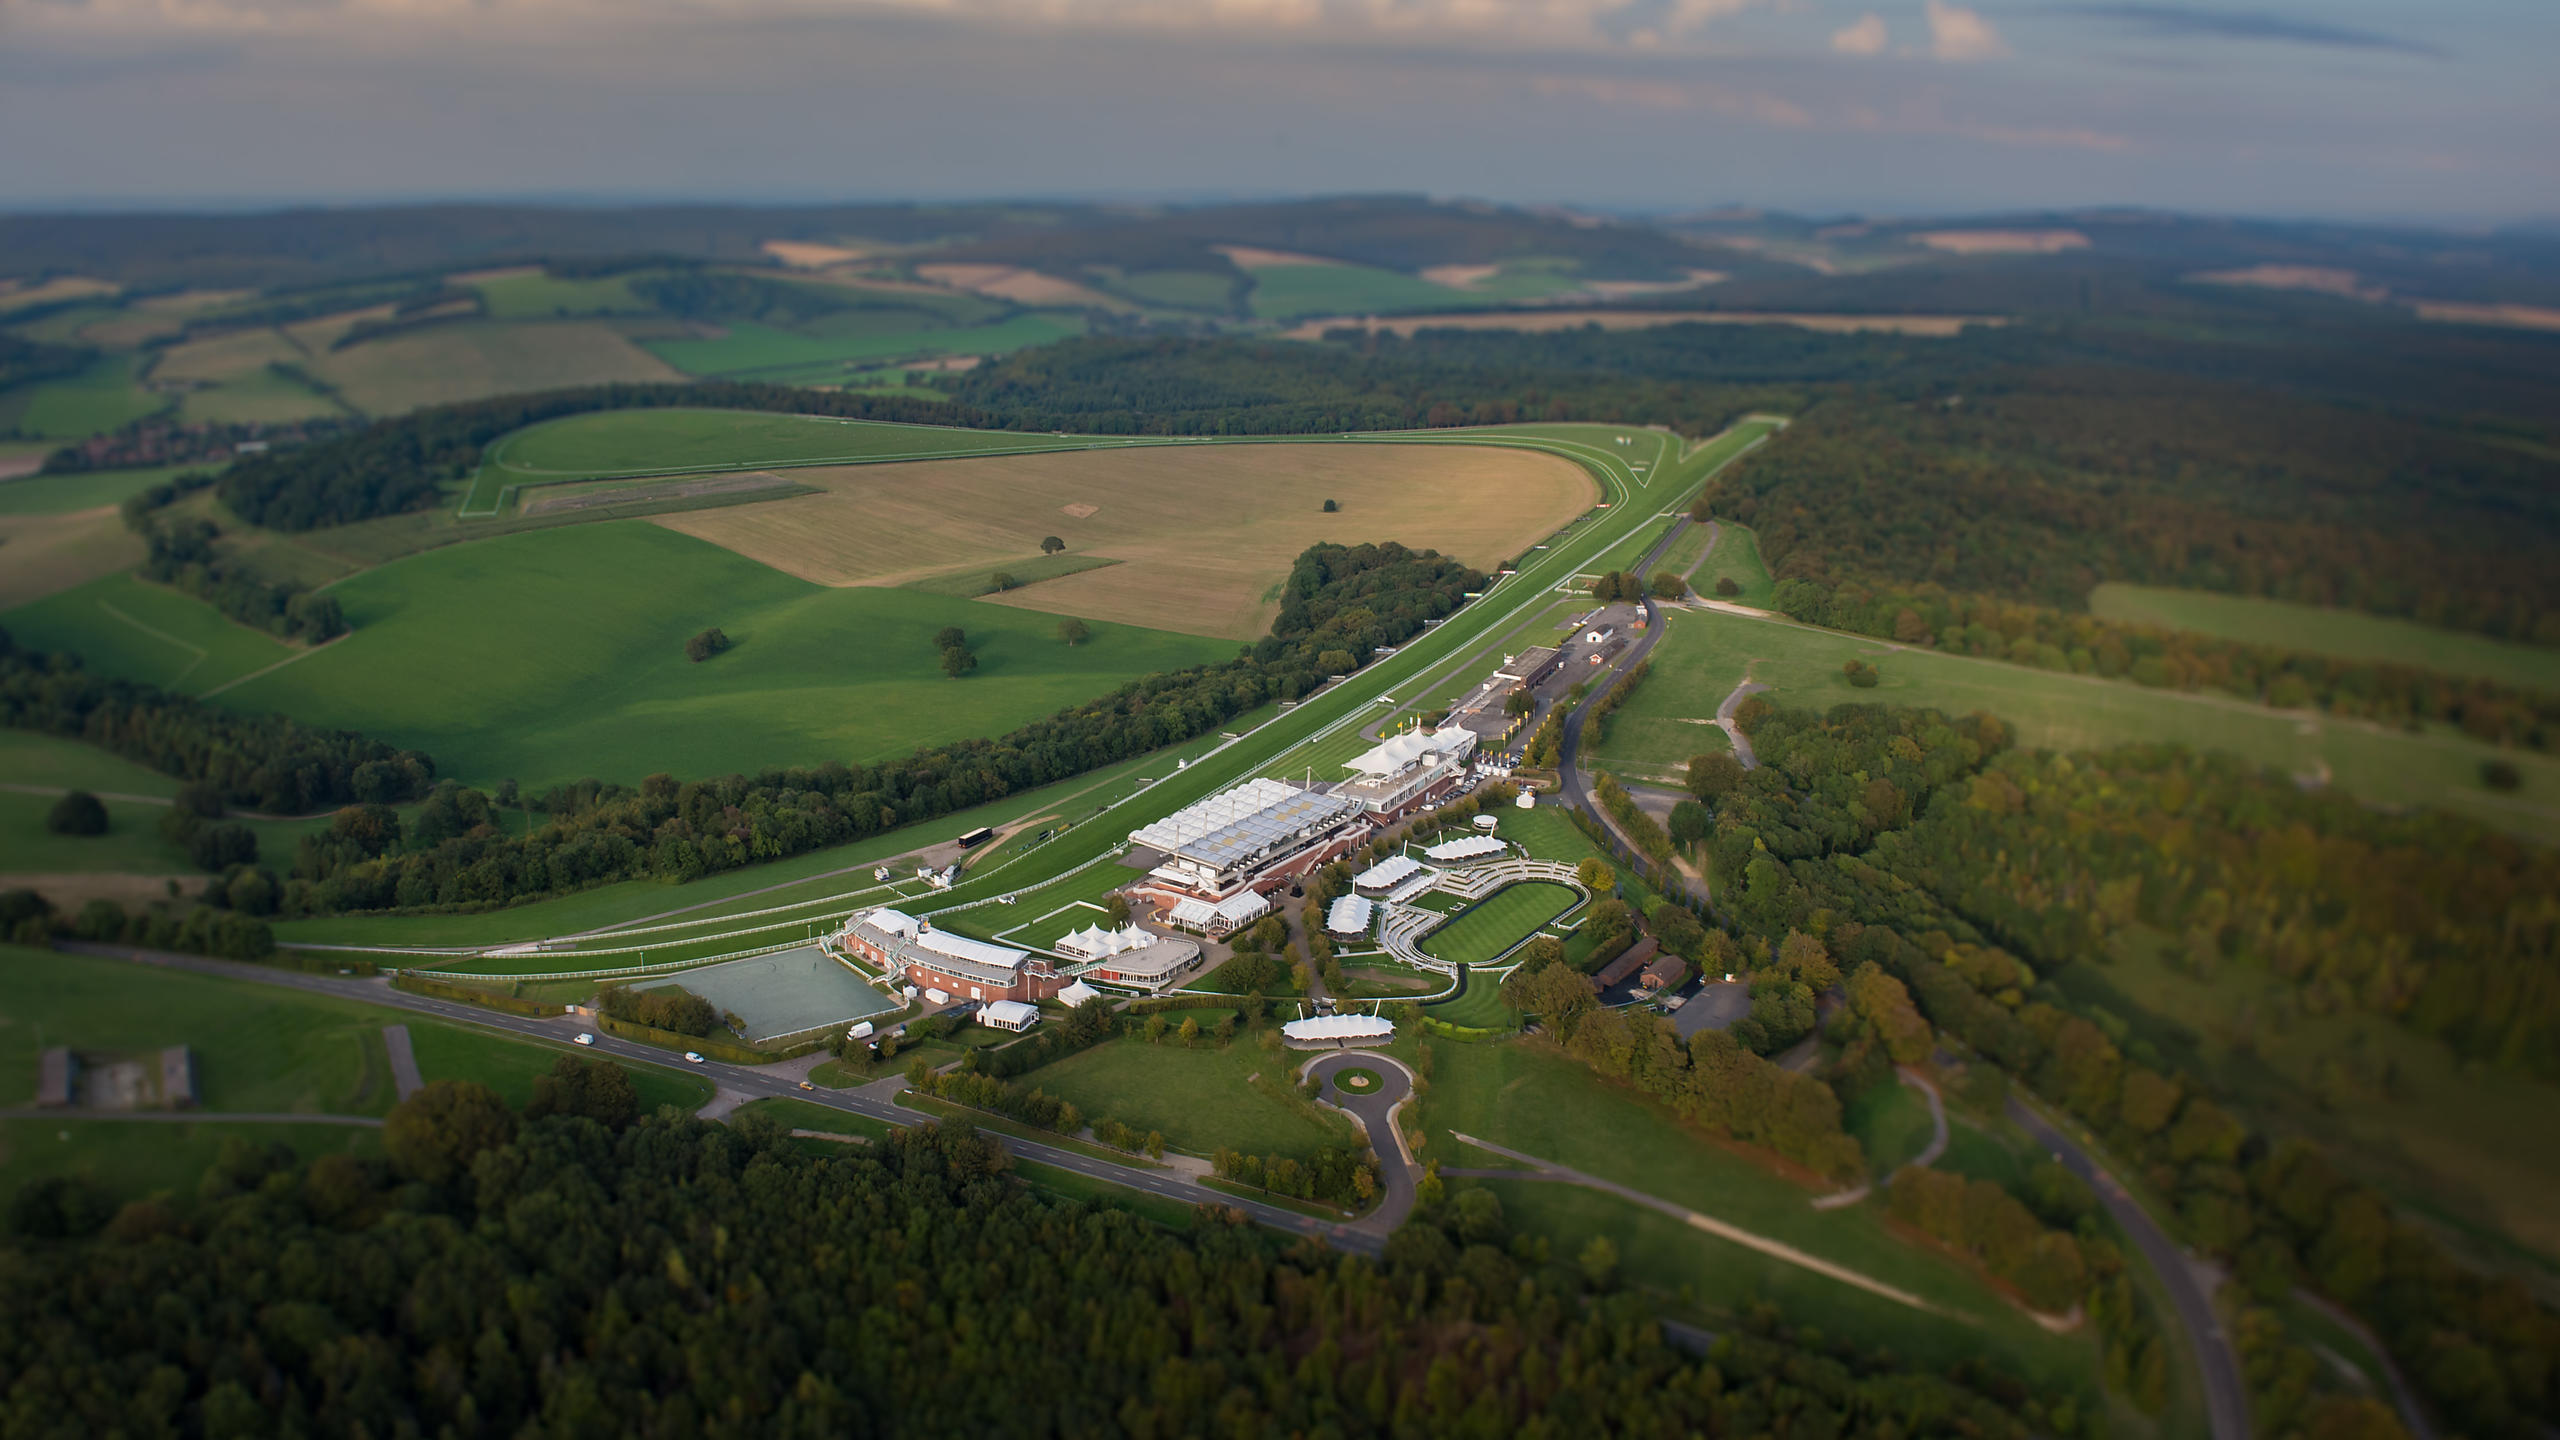 Aerial View of Goodwood Racecourse